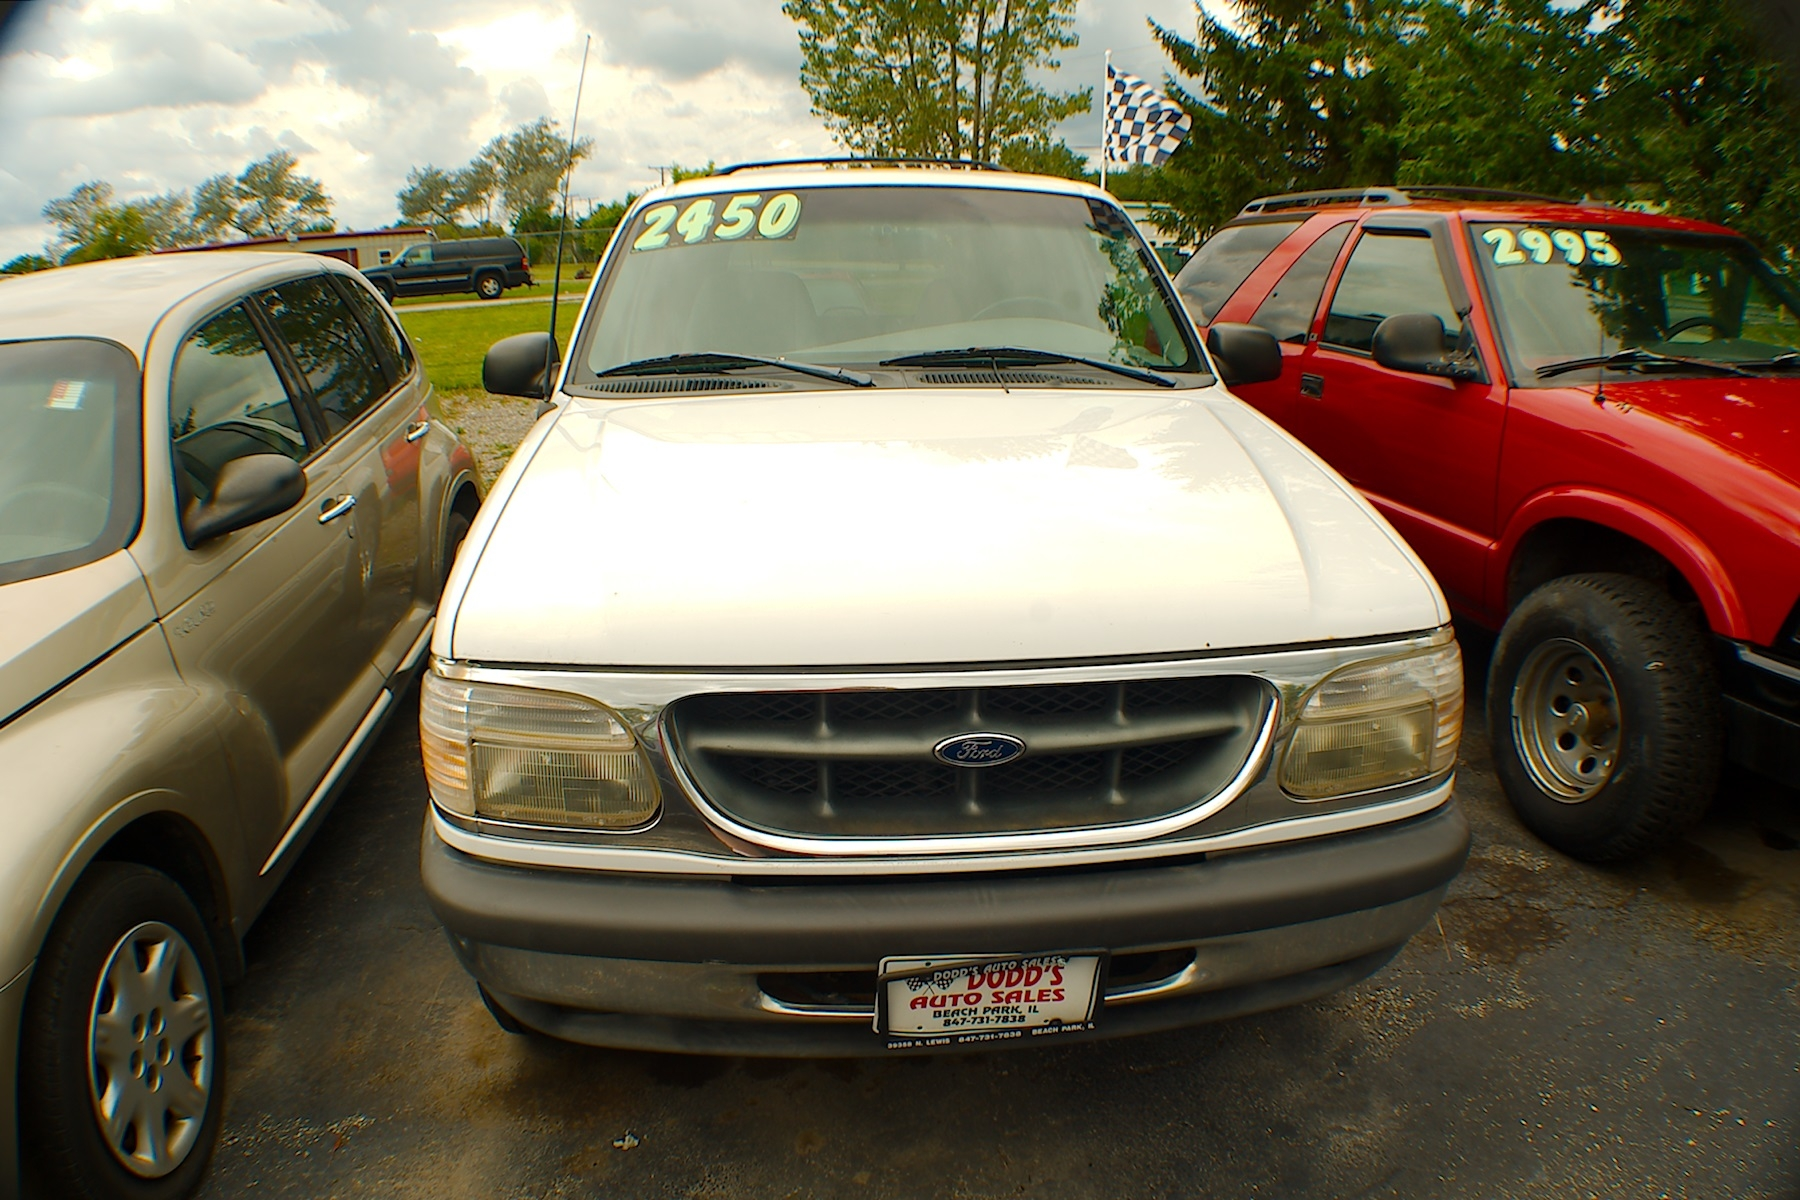 1998 Ford Explorer XLT White SUV Used Car Sale Gurnee Kenosha Mchenry Chicago Illinois